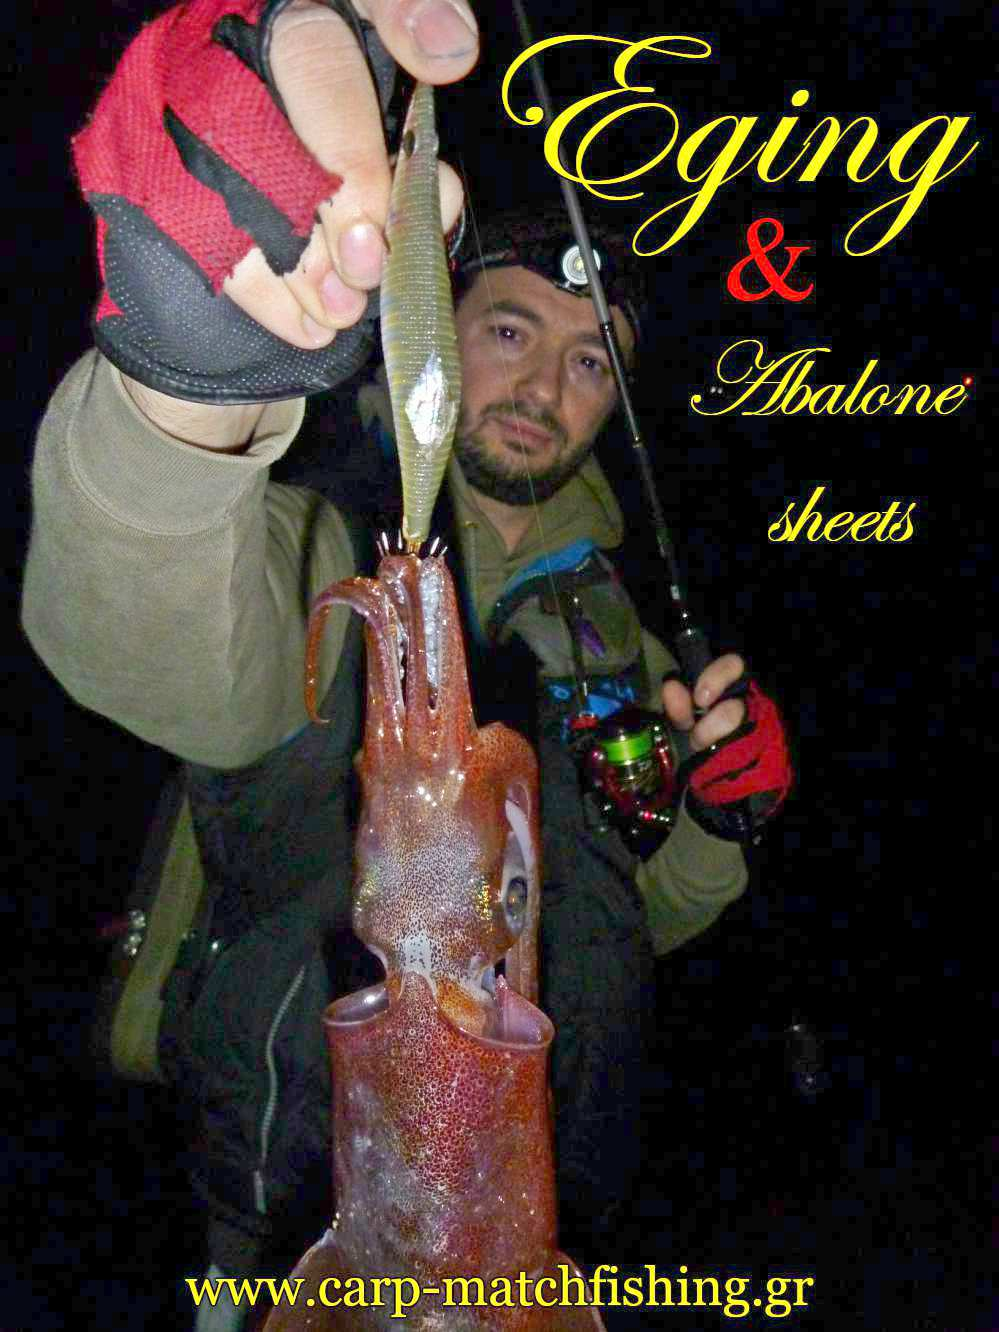 eging-with-abalone-sheets-awabi-squid-jigs-sfaltos-carpmatchfishing